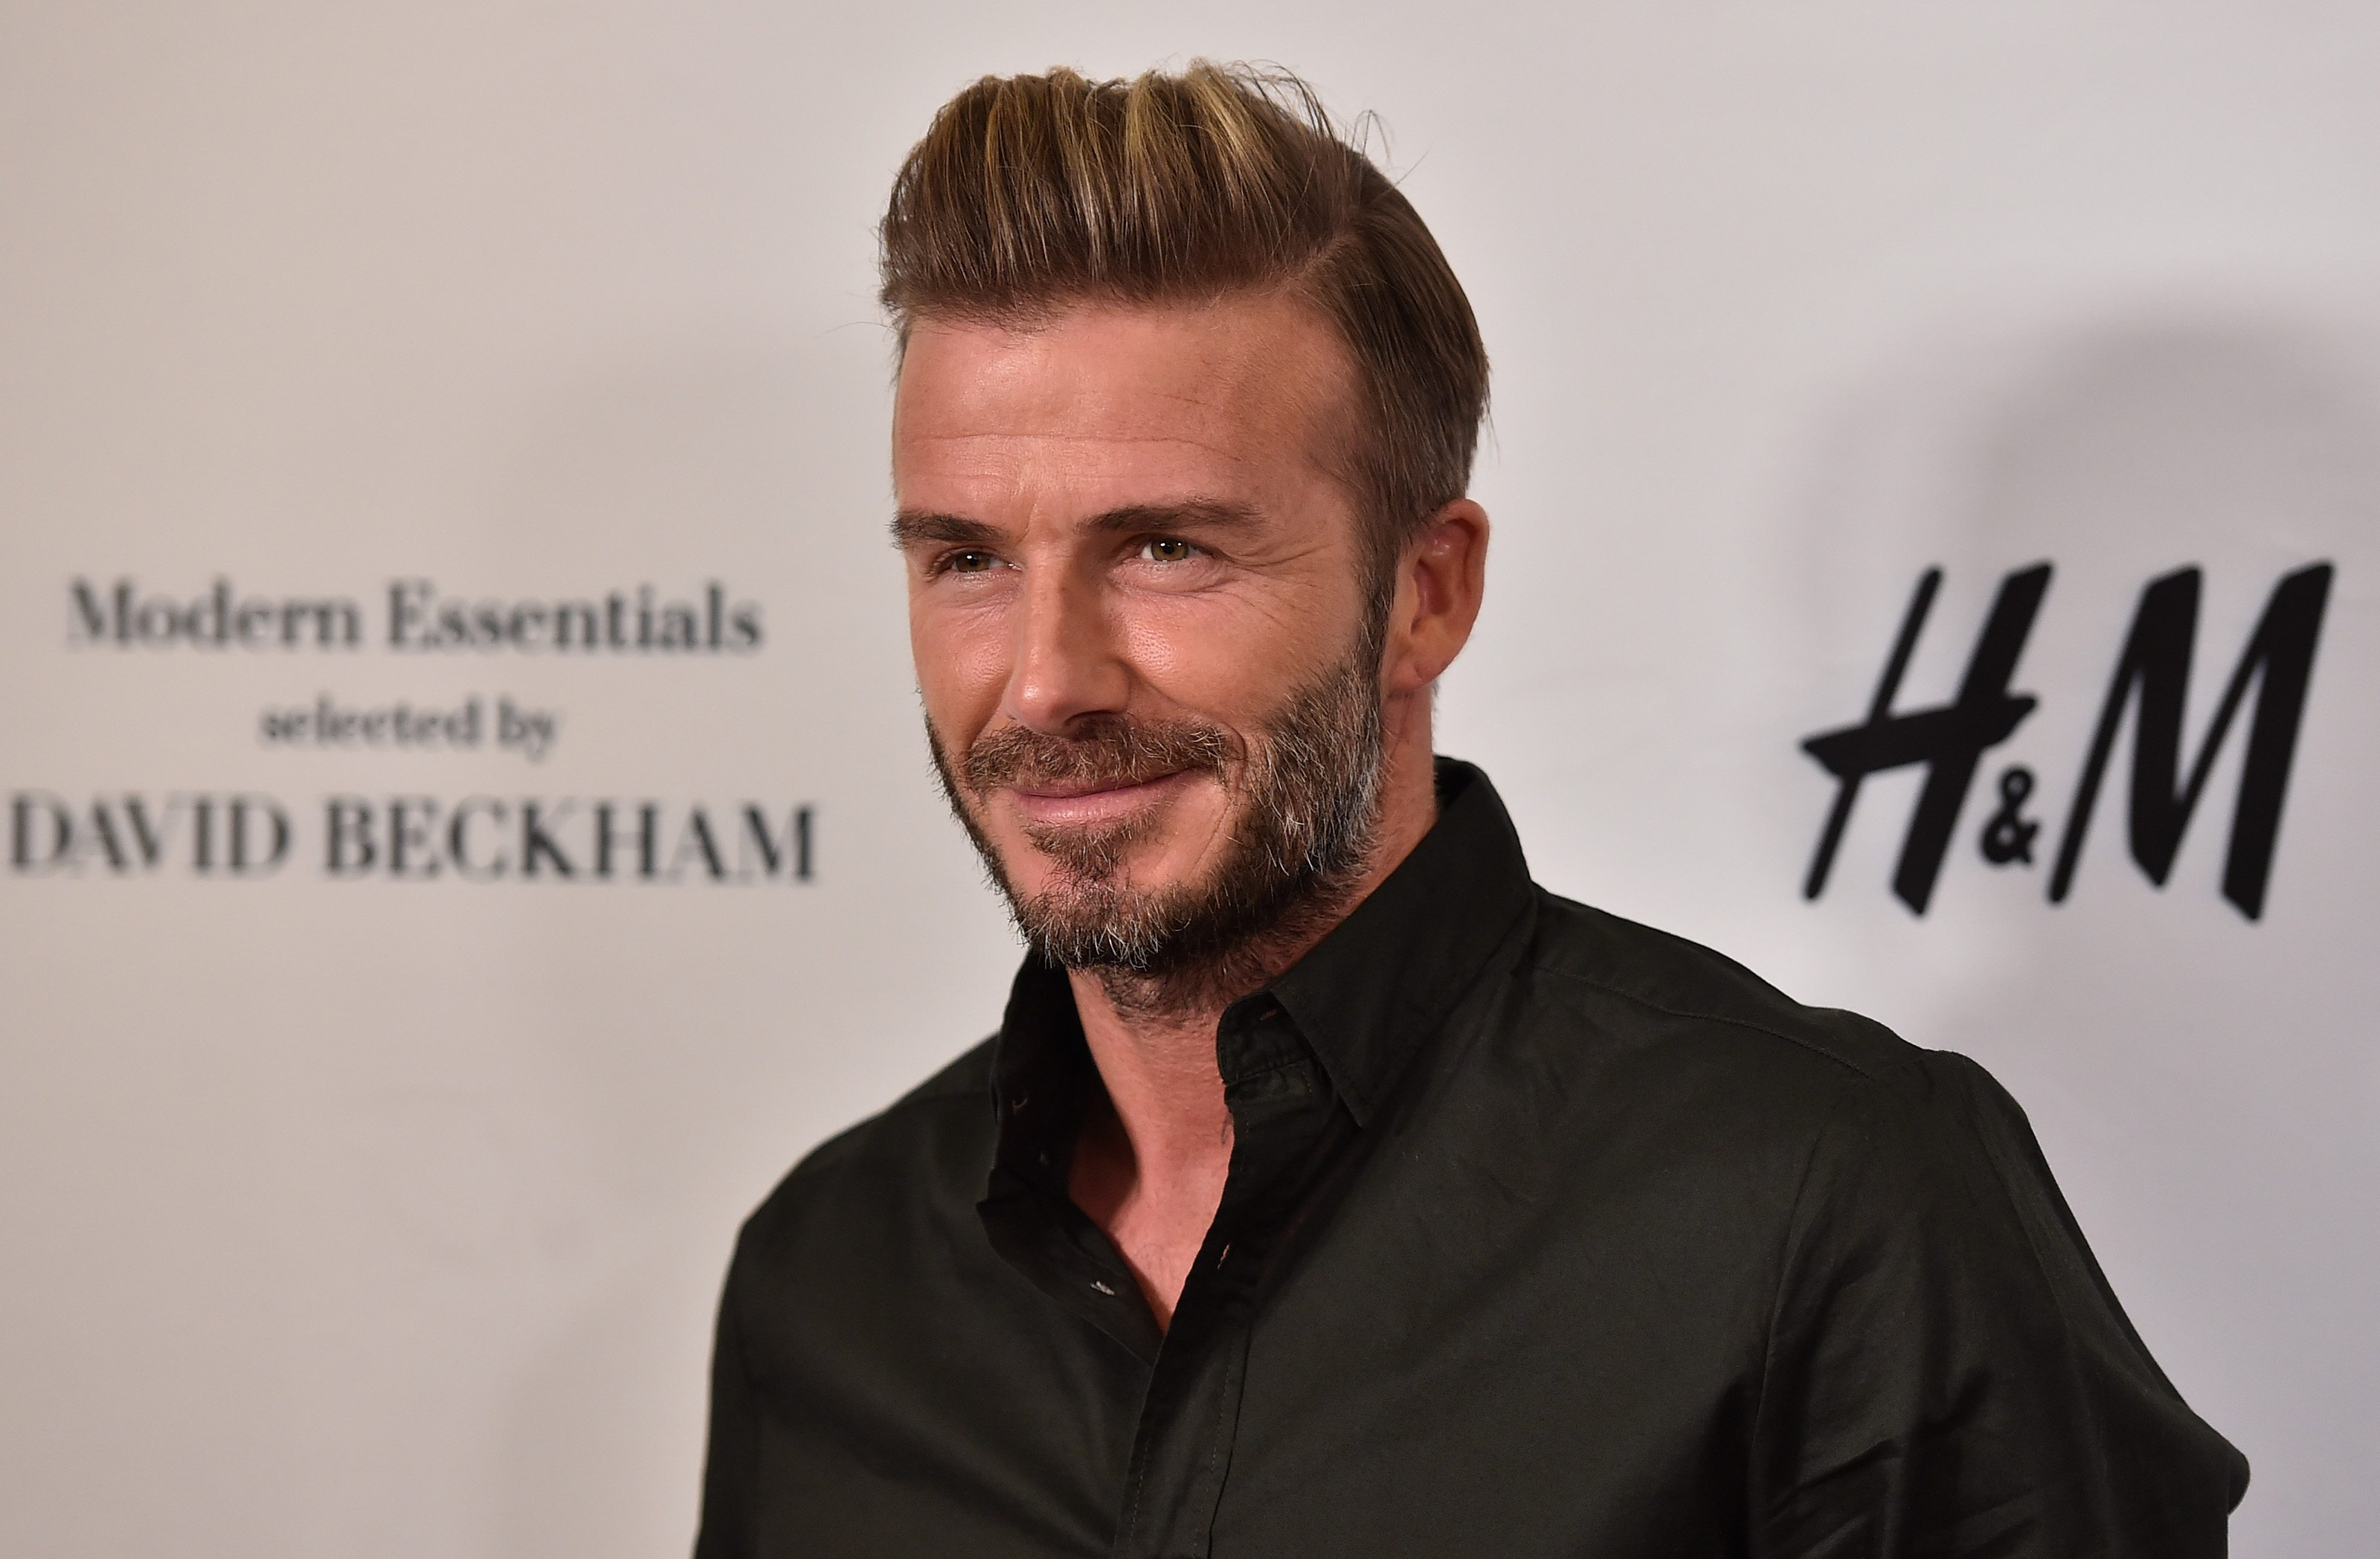 David Beckham facts